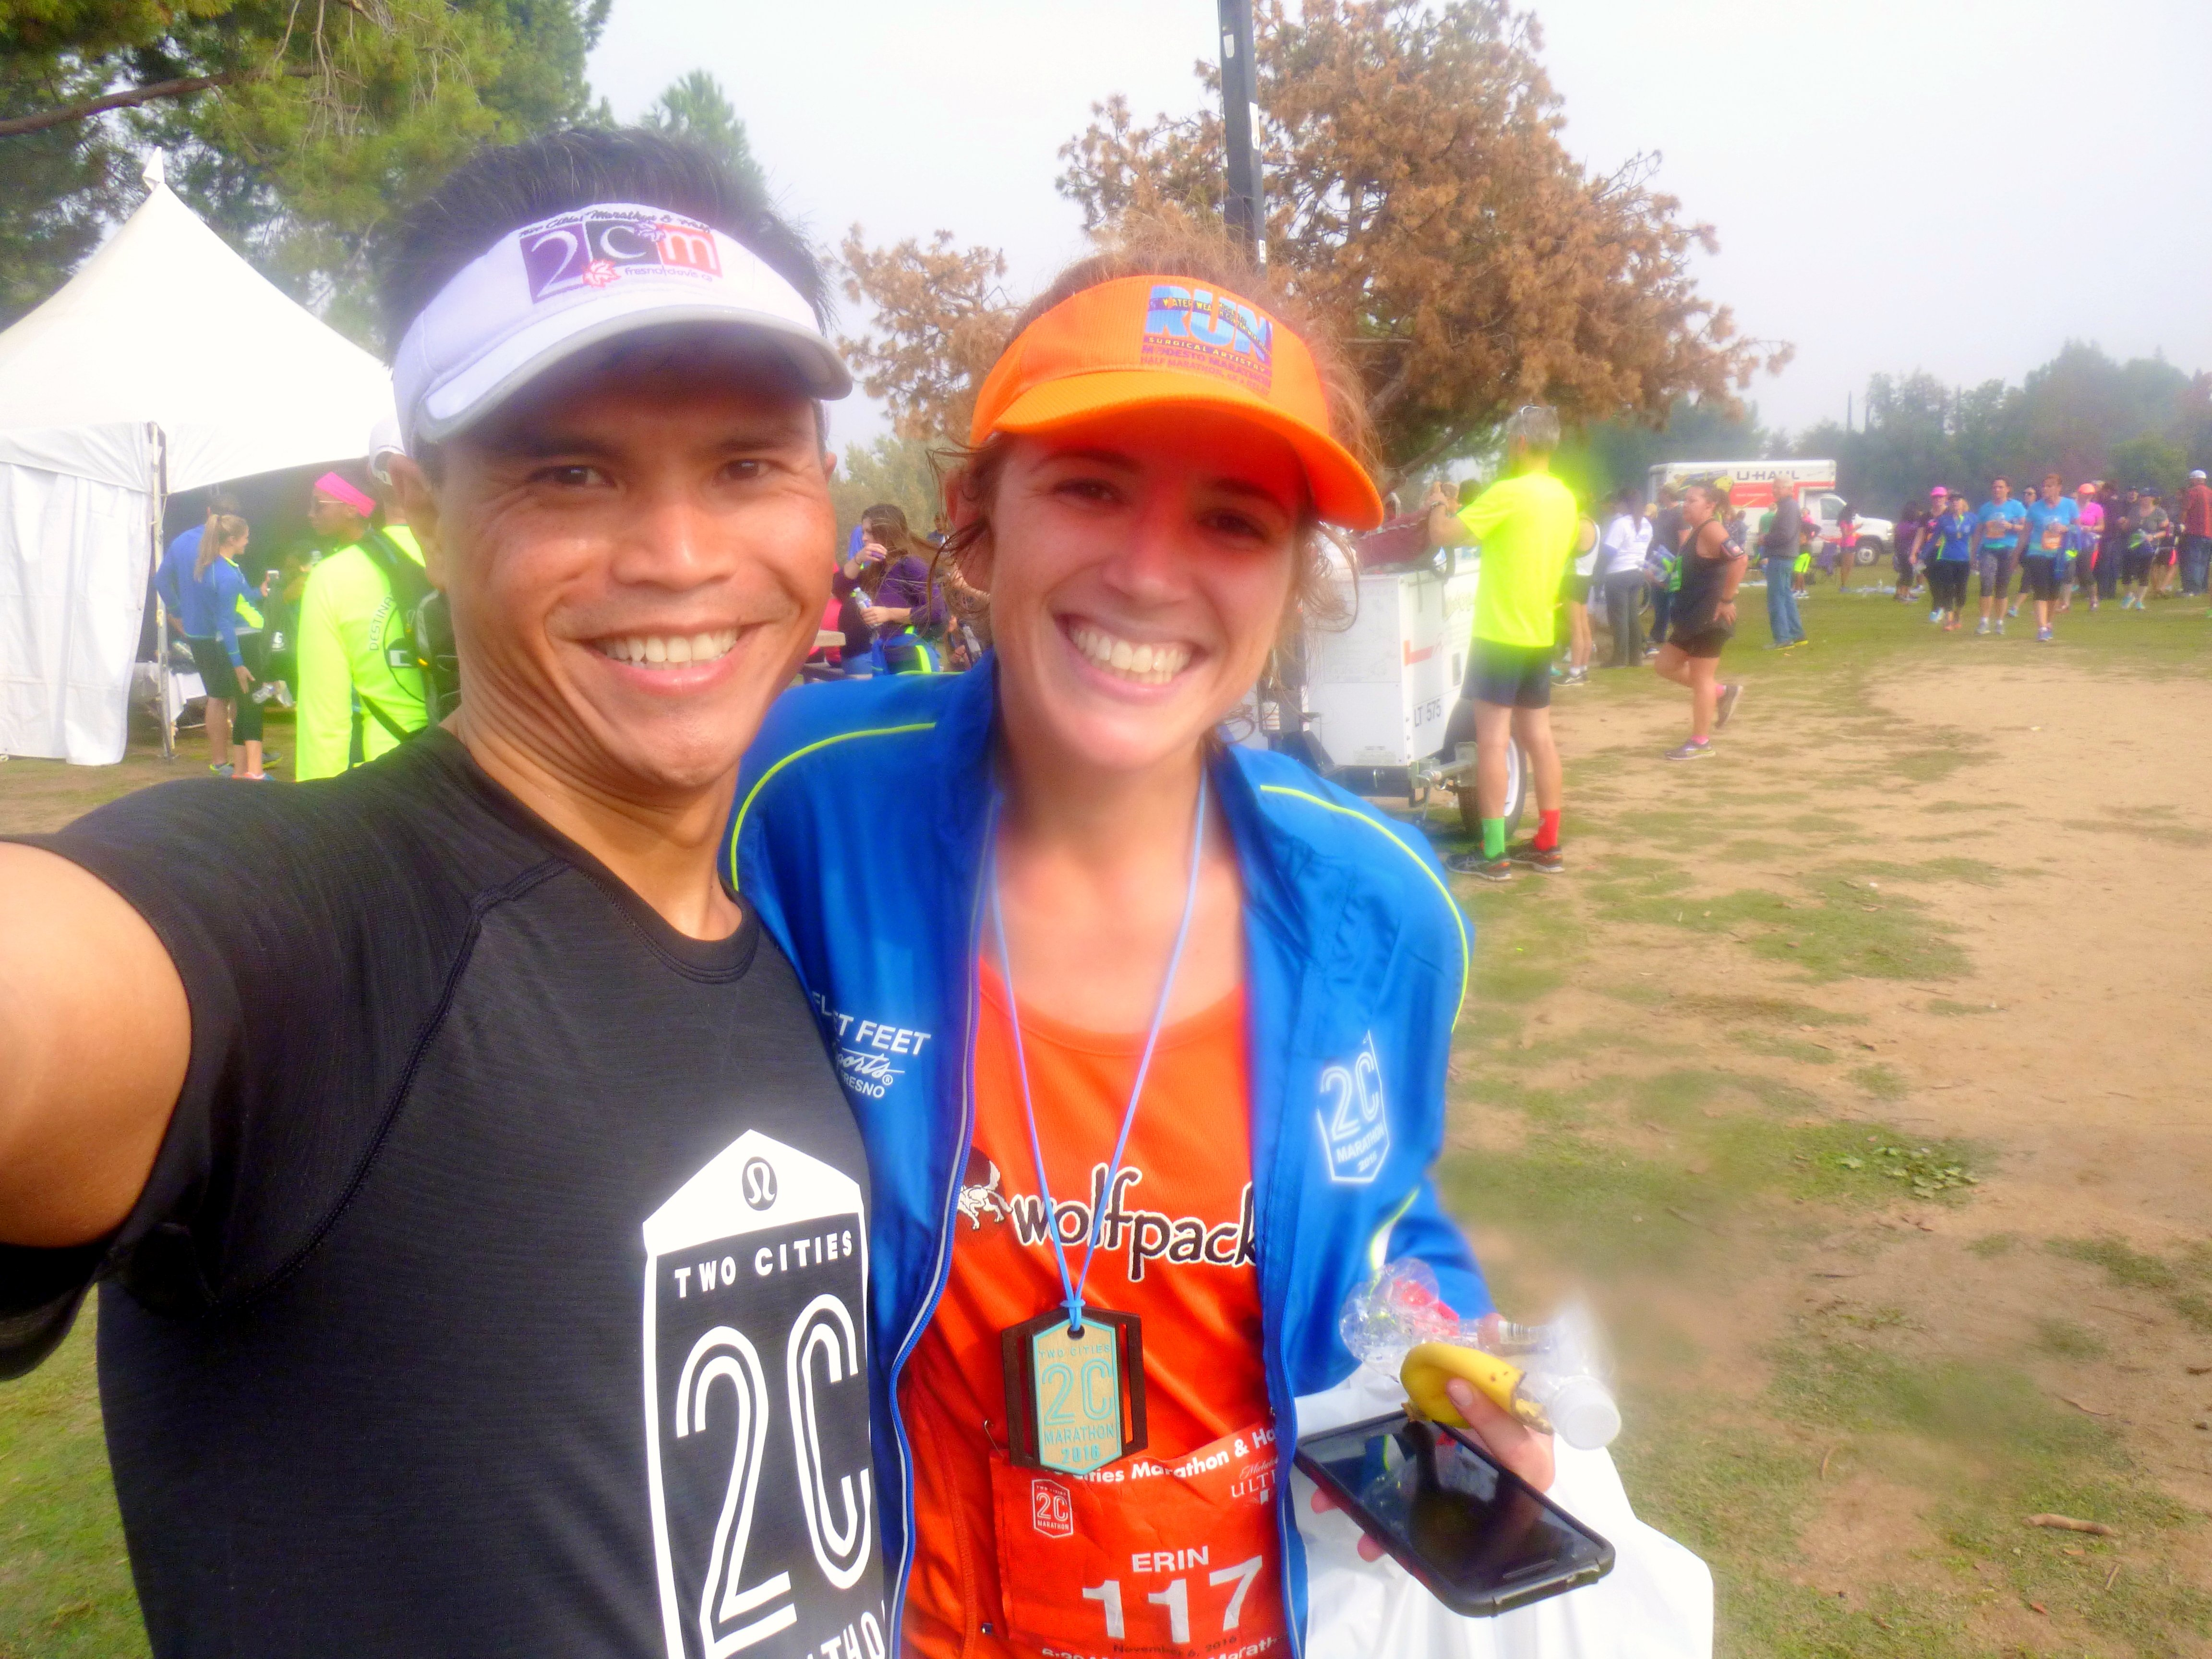 Linh and his wife, Amy, are awesome. He paced the 3:43 marathoners and she the 2:20 Clovis HMers. PC: Linh